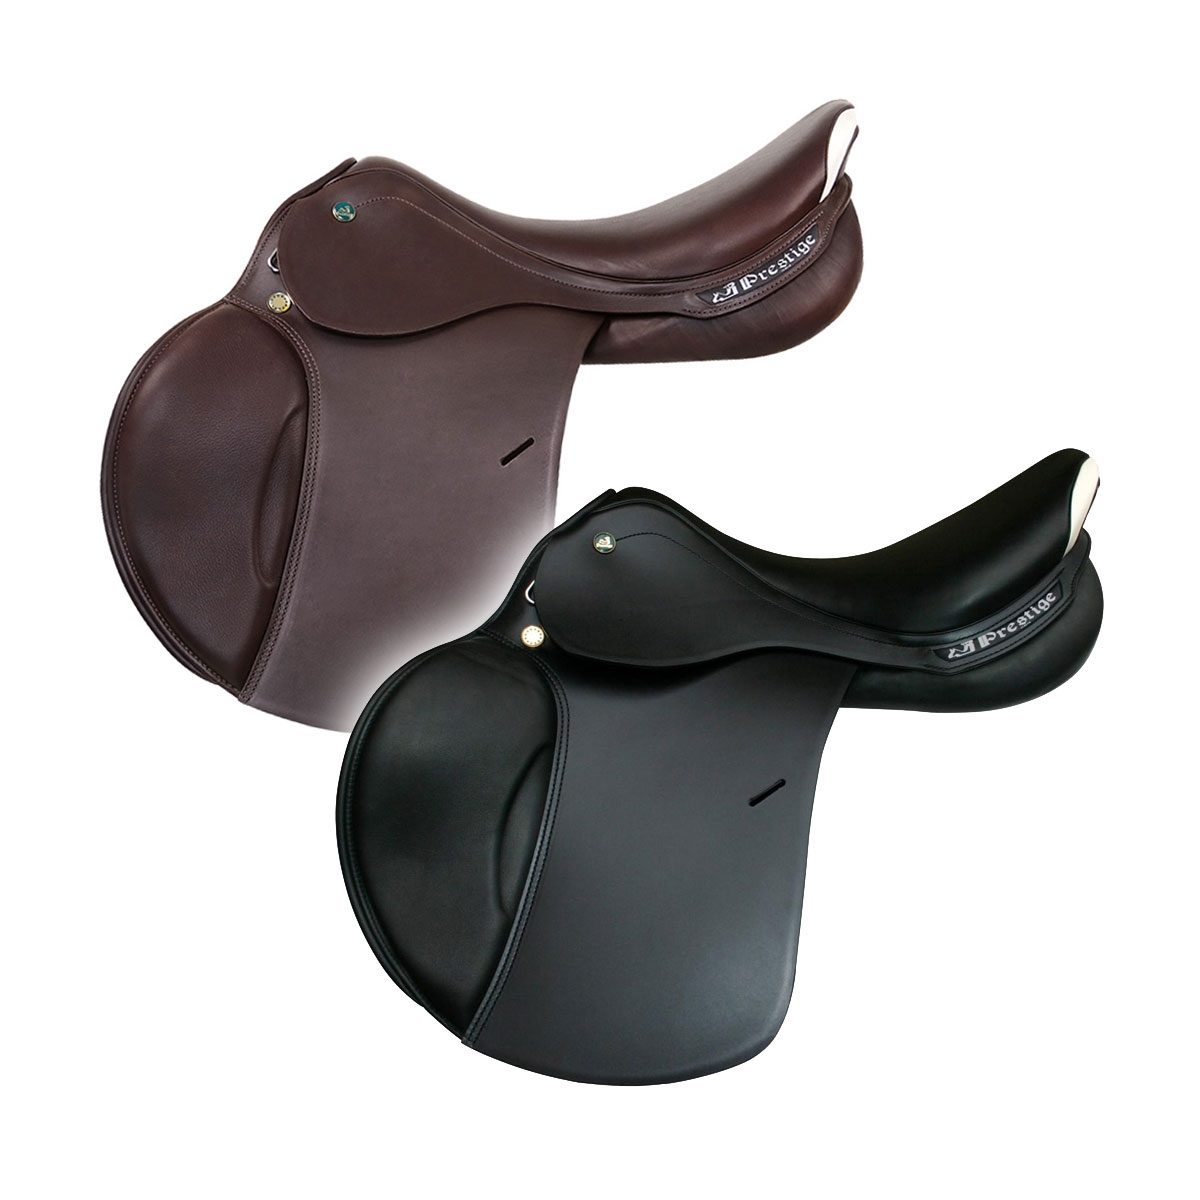 Prestige - jumping saddle ELASTIC PROFESSIONAL NEW